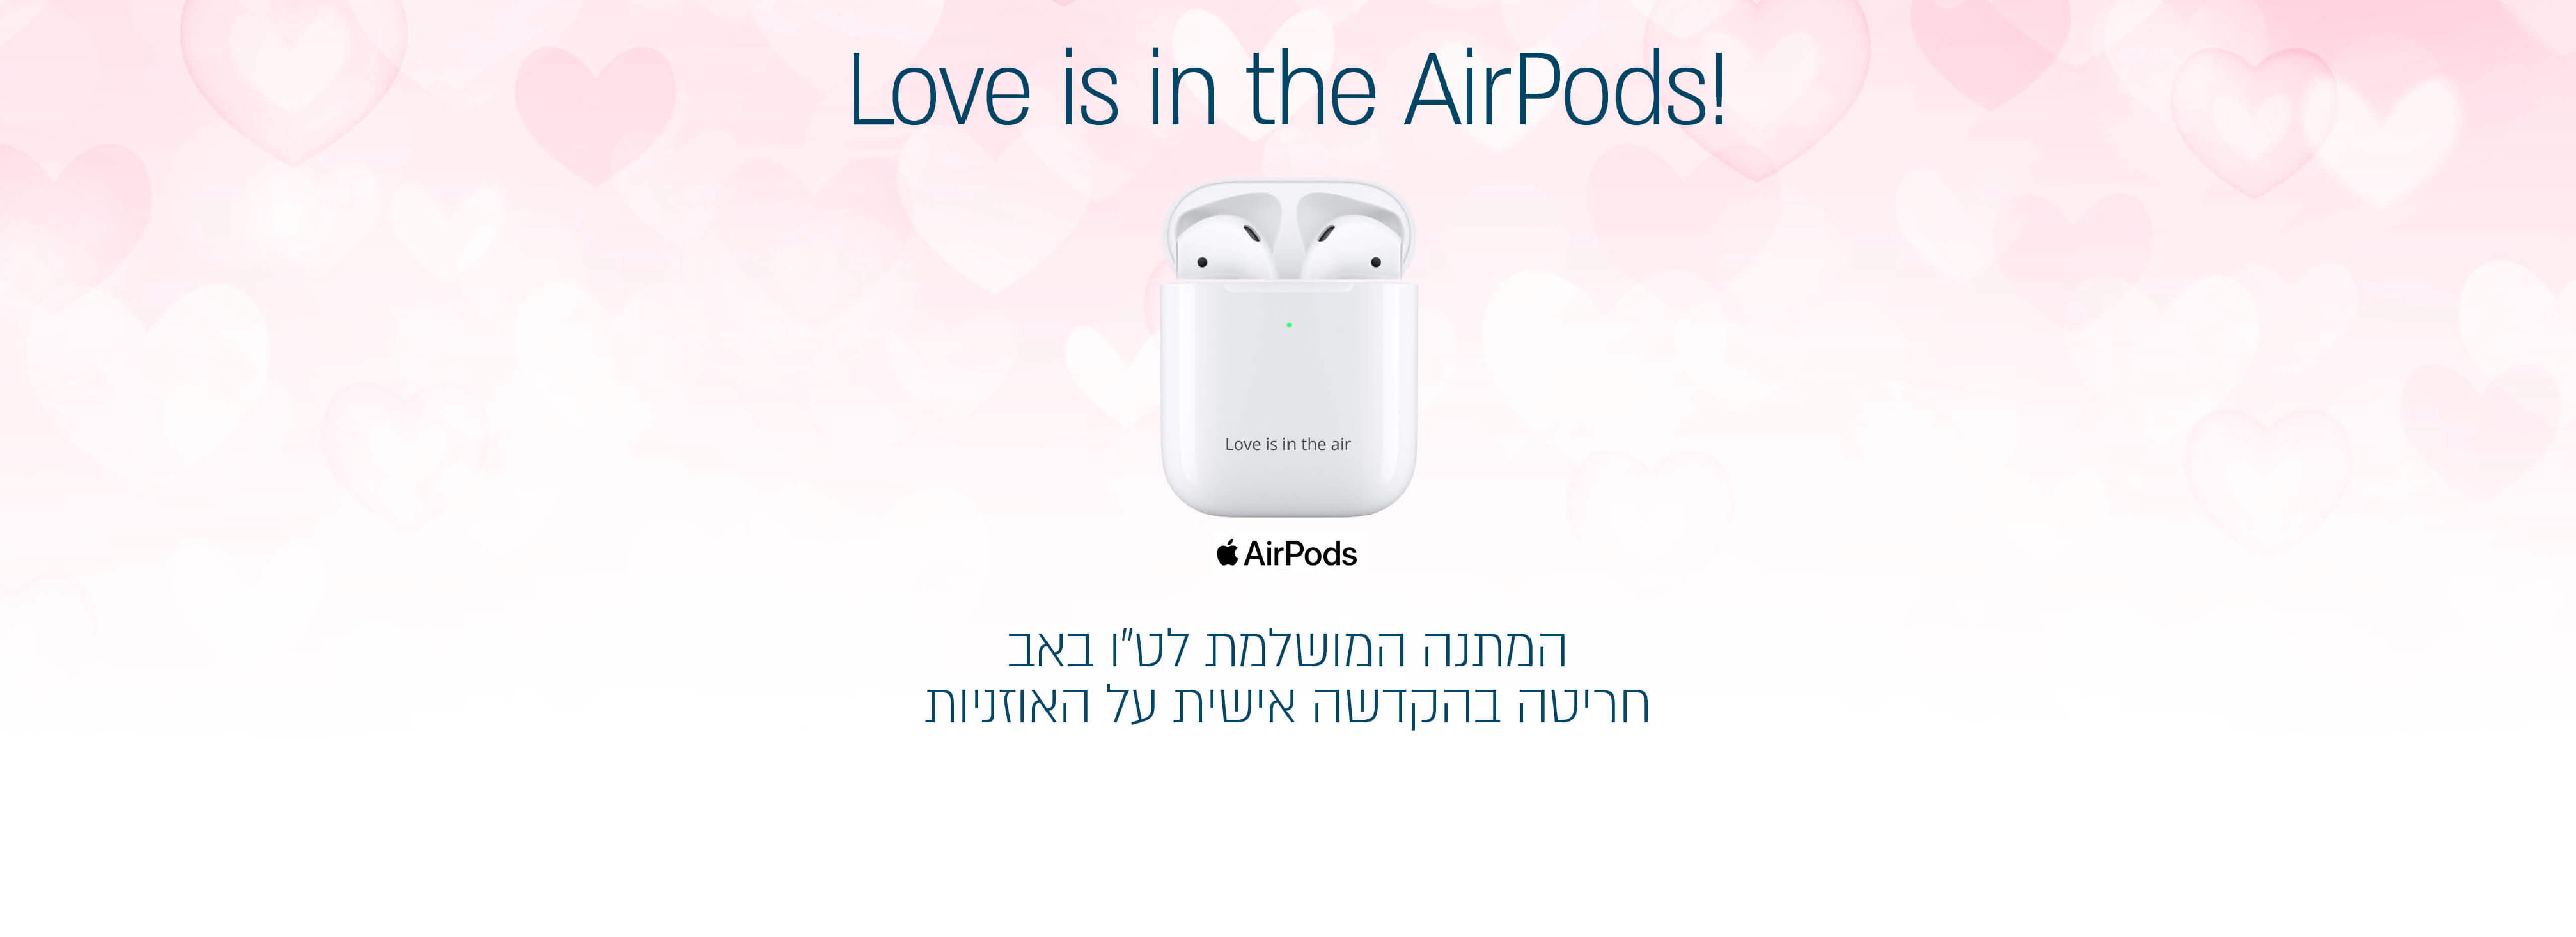 Love is in the AirPods